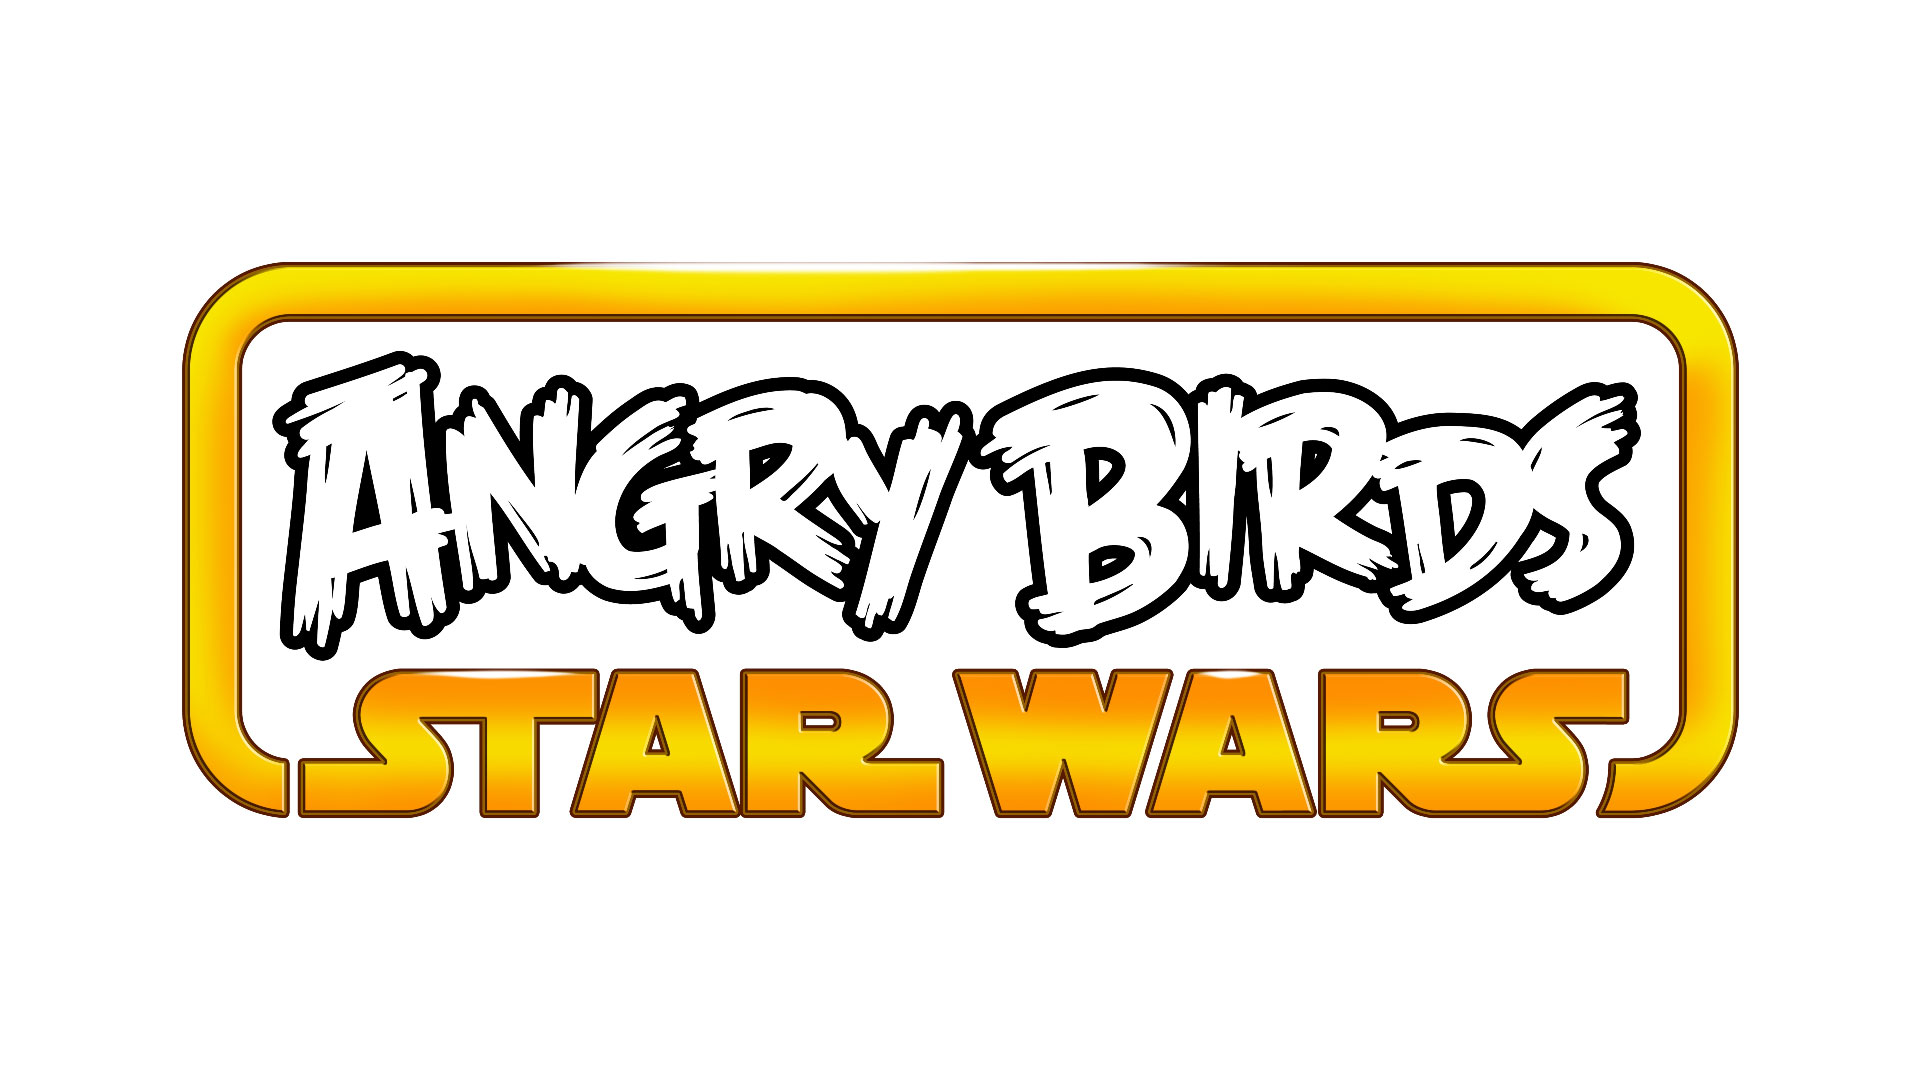 Angry-Birds-Star-Wars-Logo-1920x1080-wallpaper-wp3602489